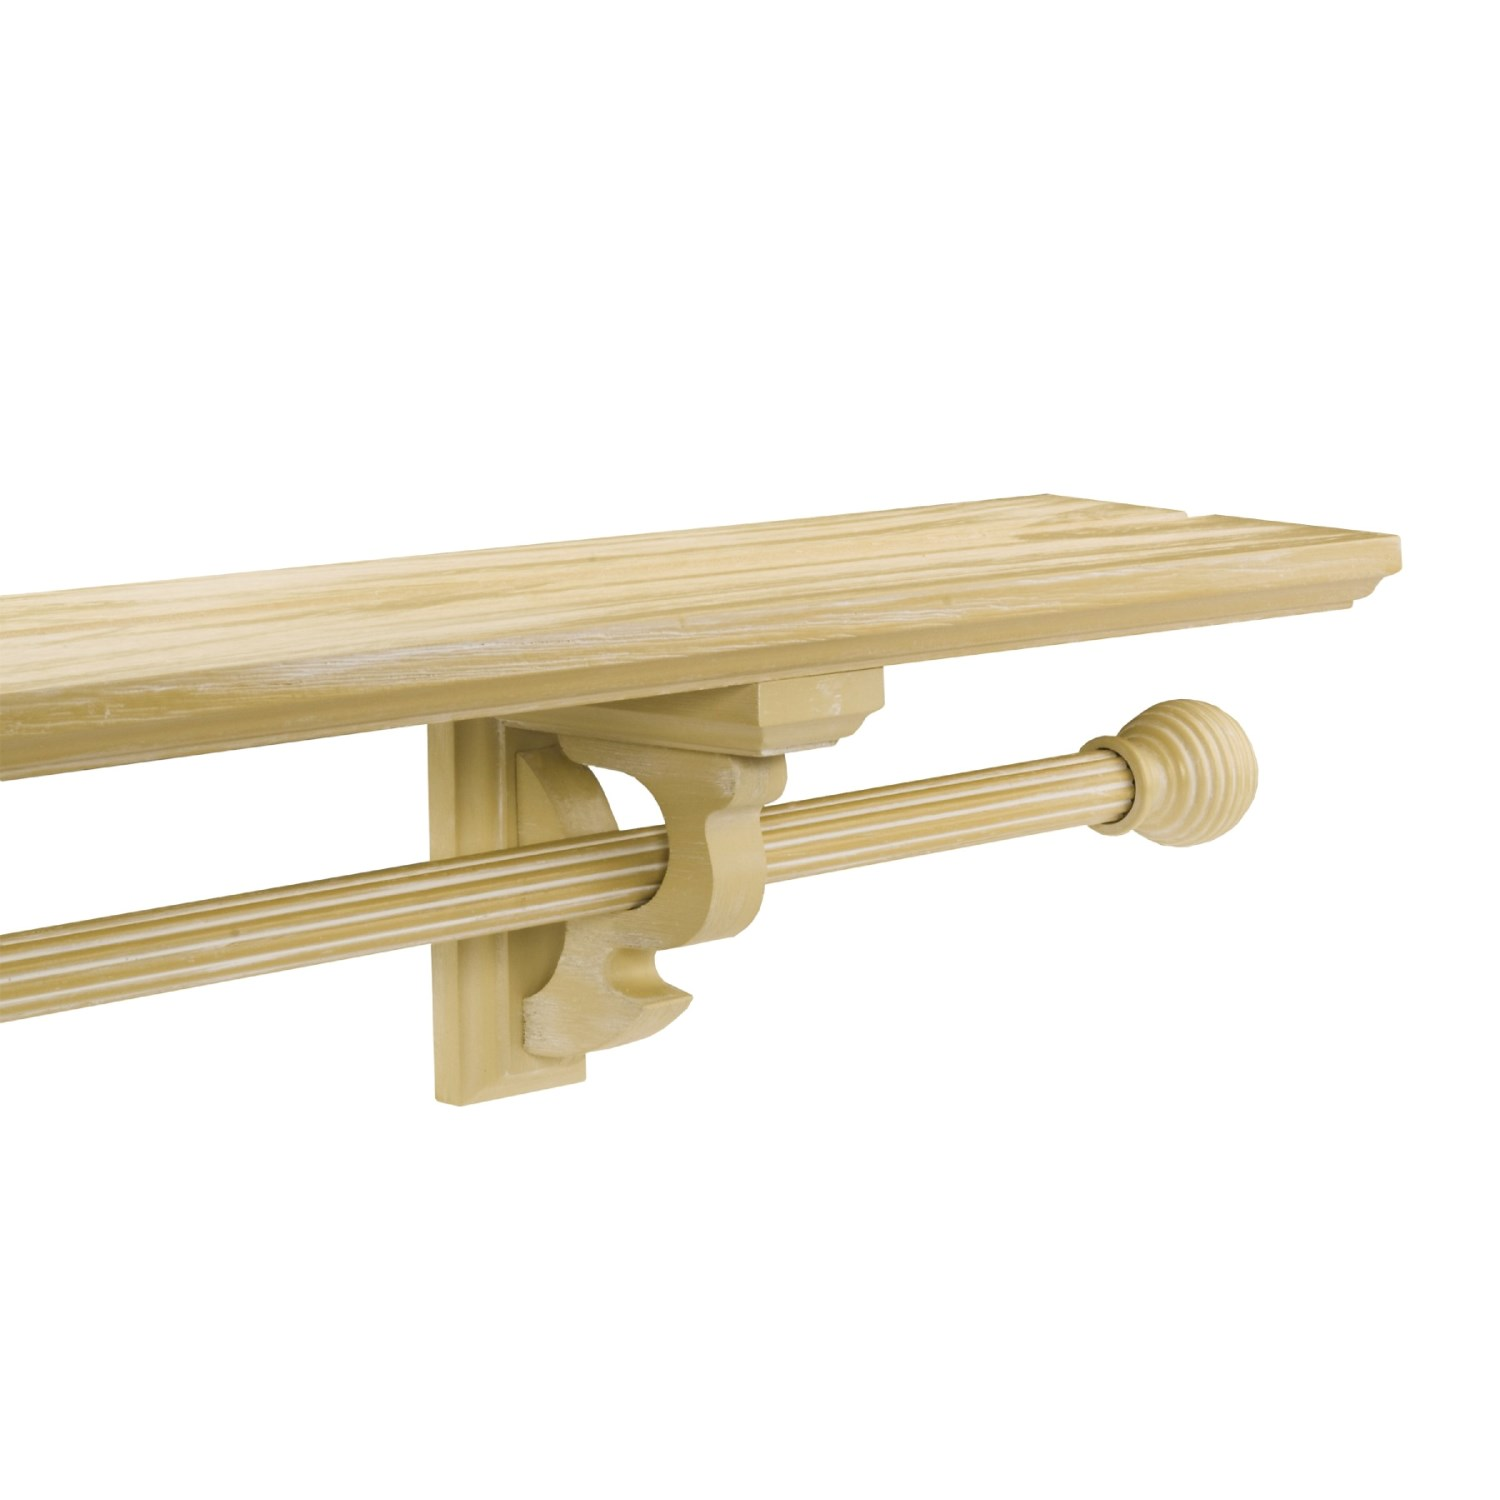 ... Brackets-Firewood-Storage-Rack-Shelf-Brackets-Workbench-Kit